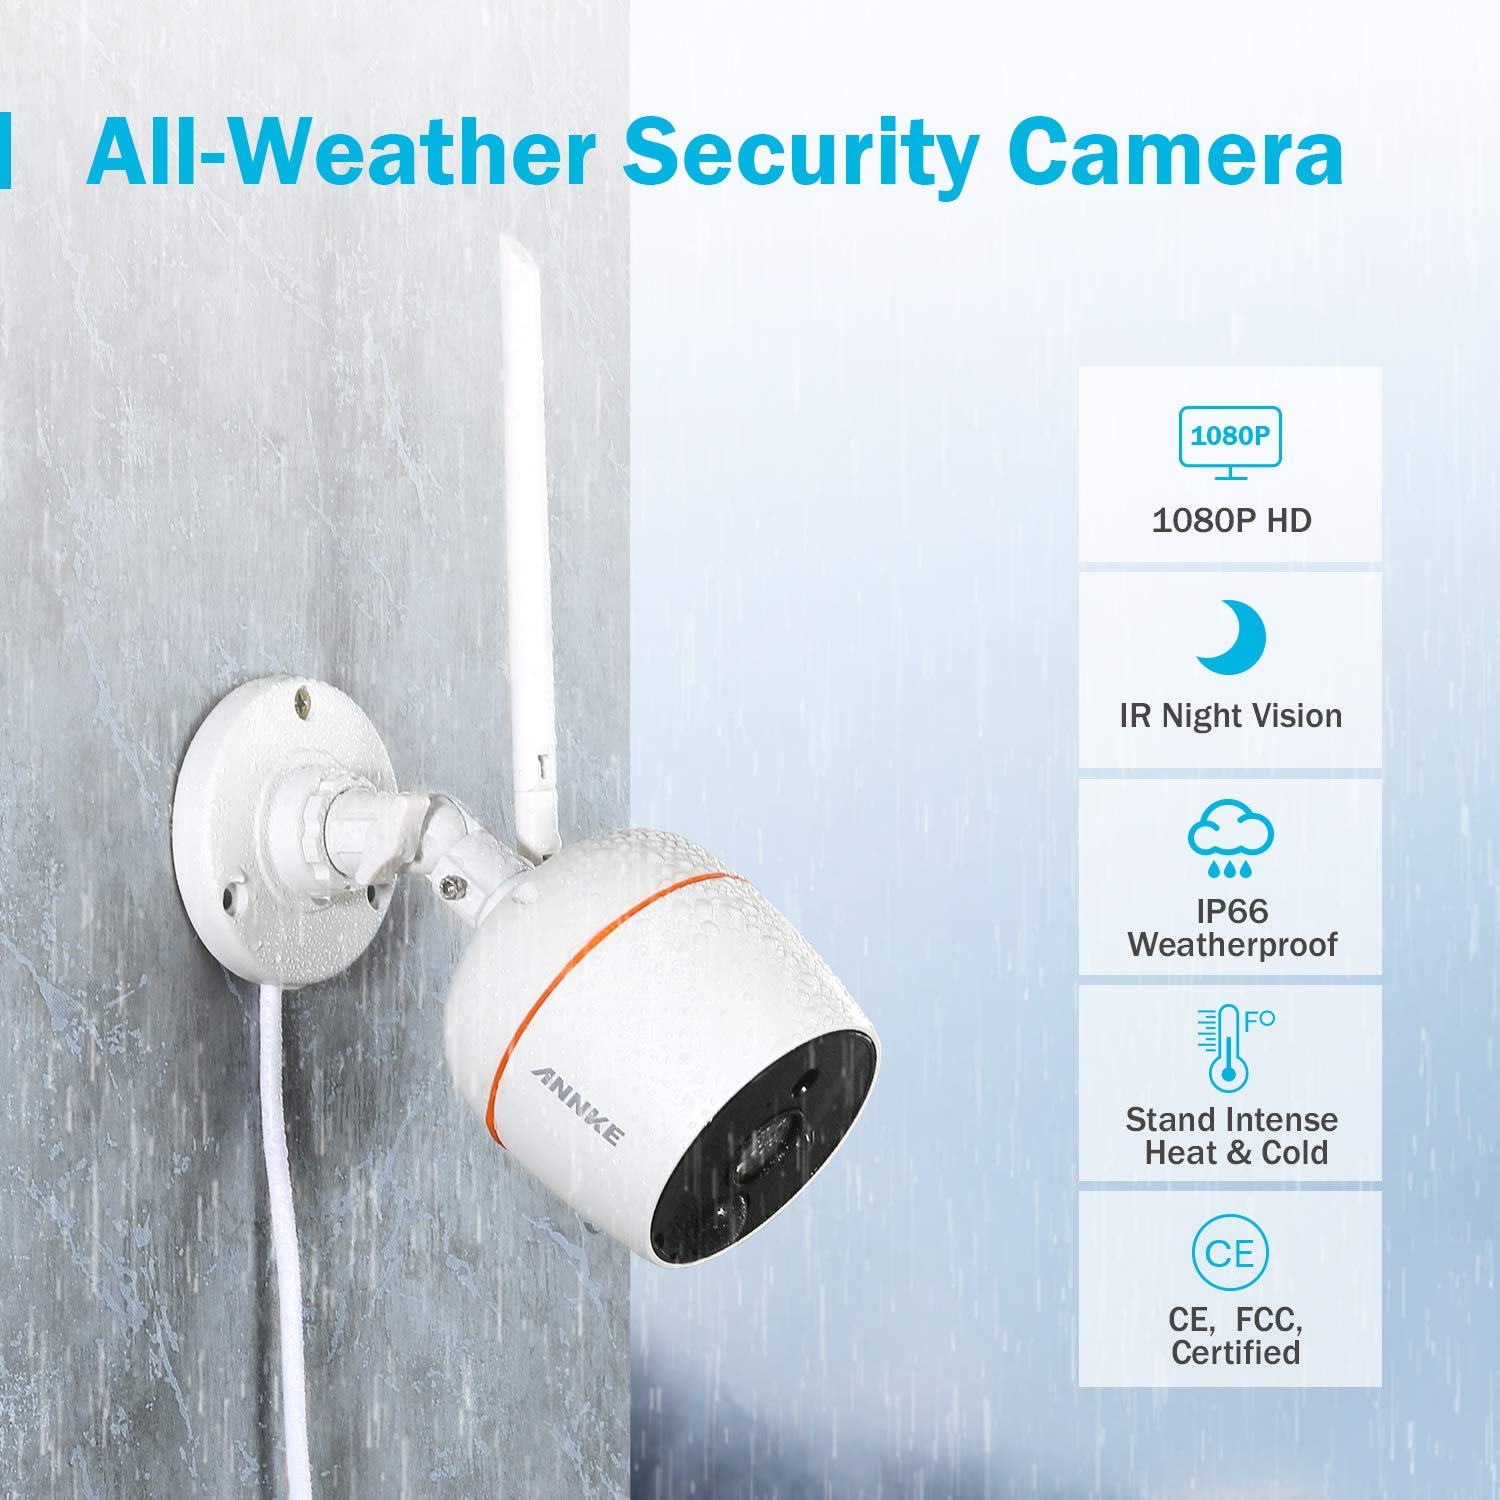 ANNKE Wireless IP Camera, 1080P 2 Pack Home Security WiFi Cameras, Plug and Play, PIR Motion Detection, Two-Way Audio, IP66 Weatherproof Indoor/Outdoor CCTV Camera, Support UP to 128GB TF Card by ANNKE (Image #7)